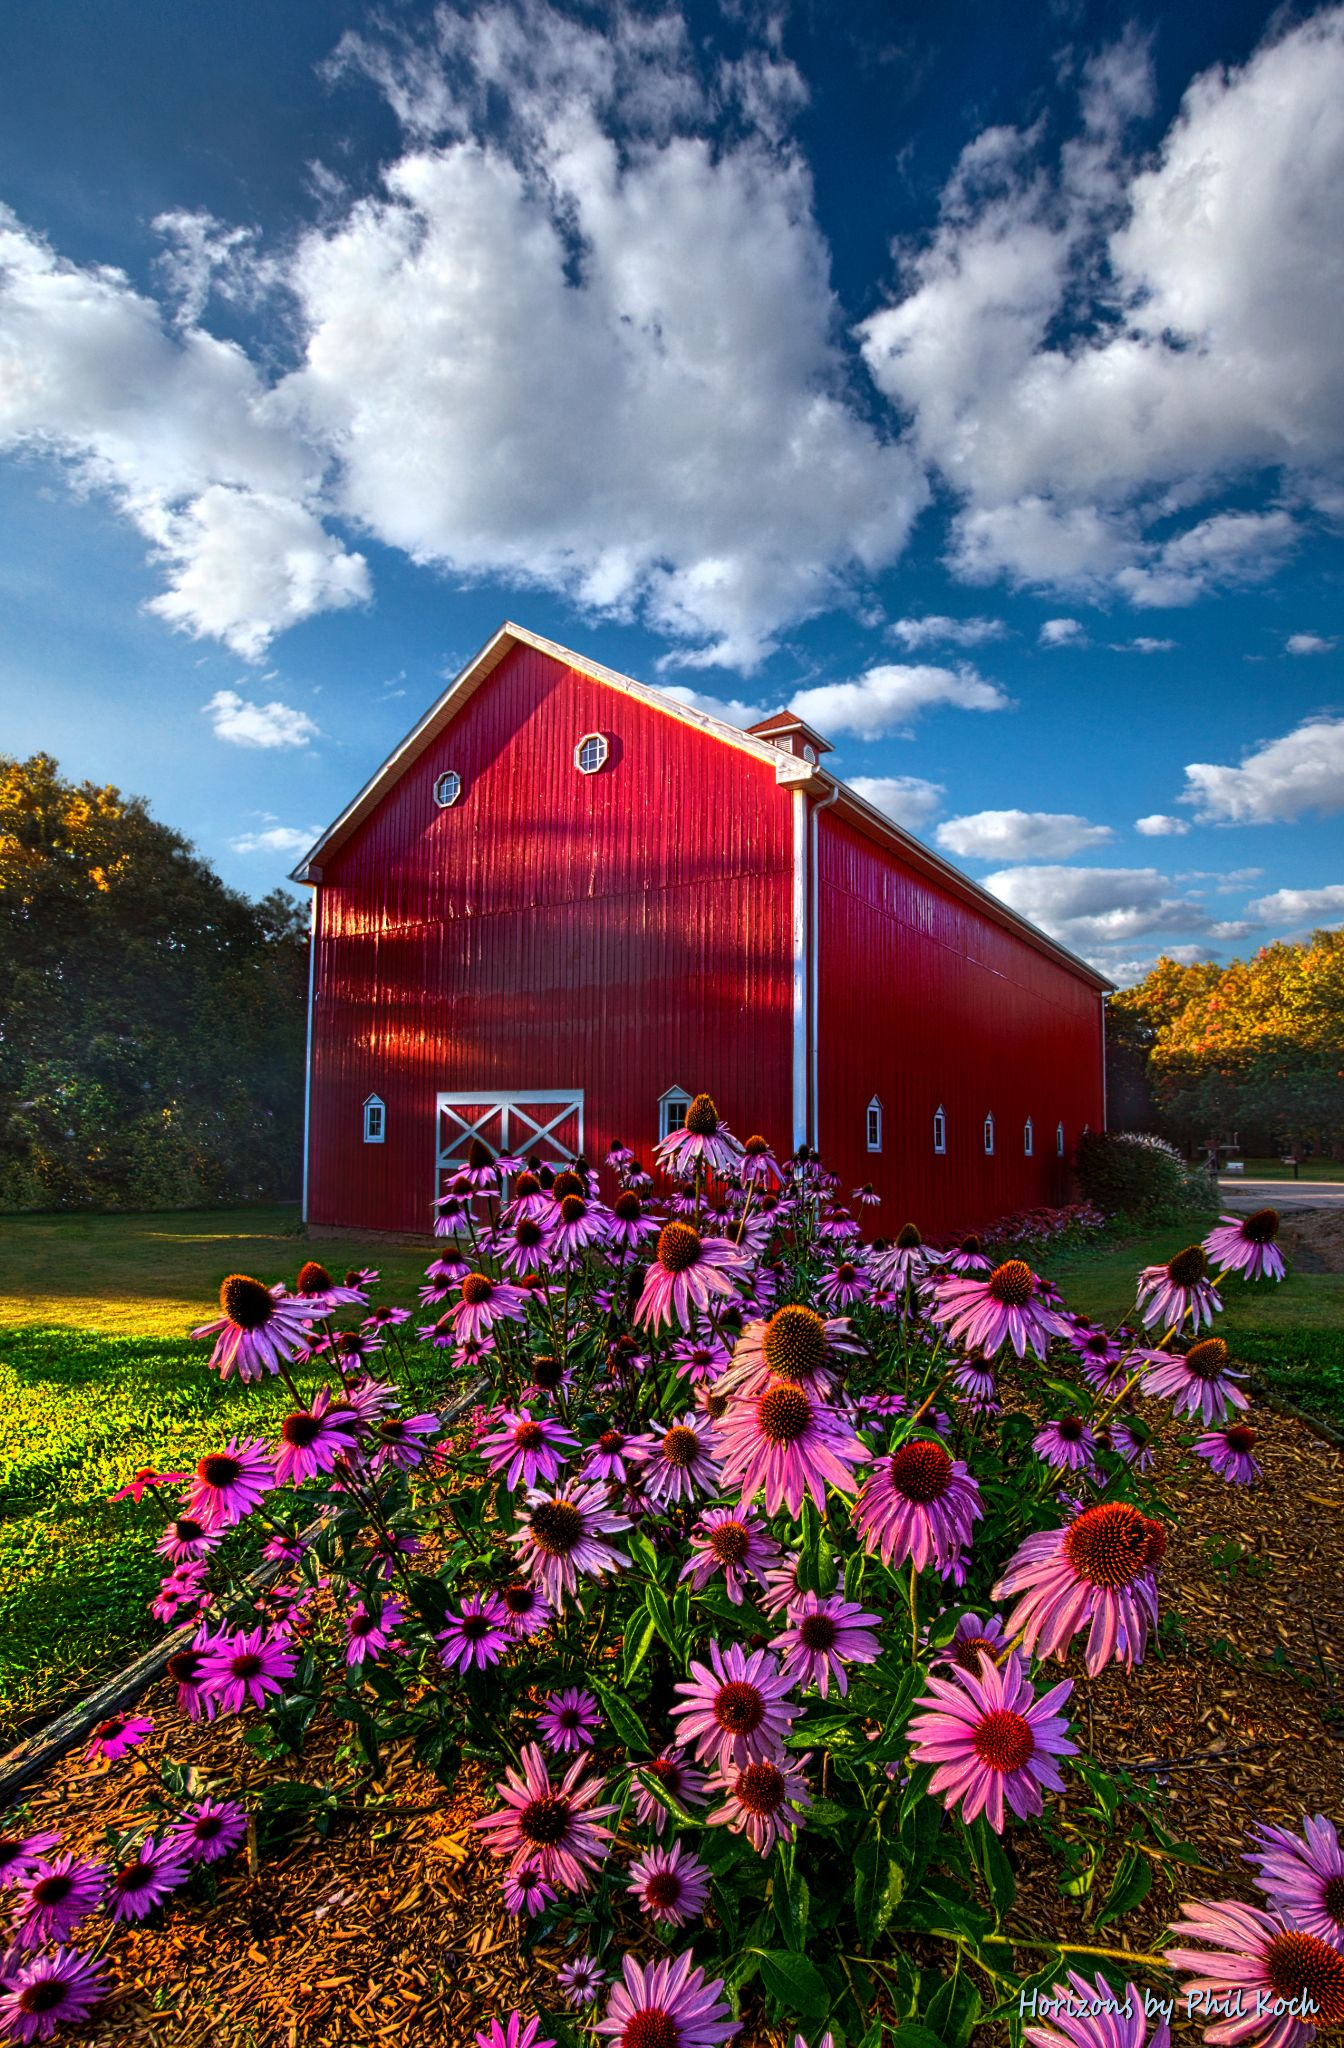 A Little More Country by PhilKoch